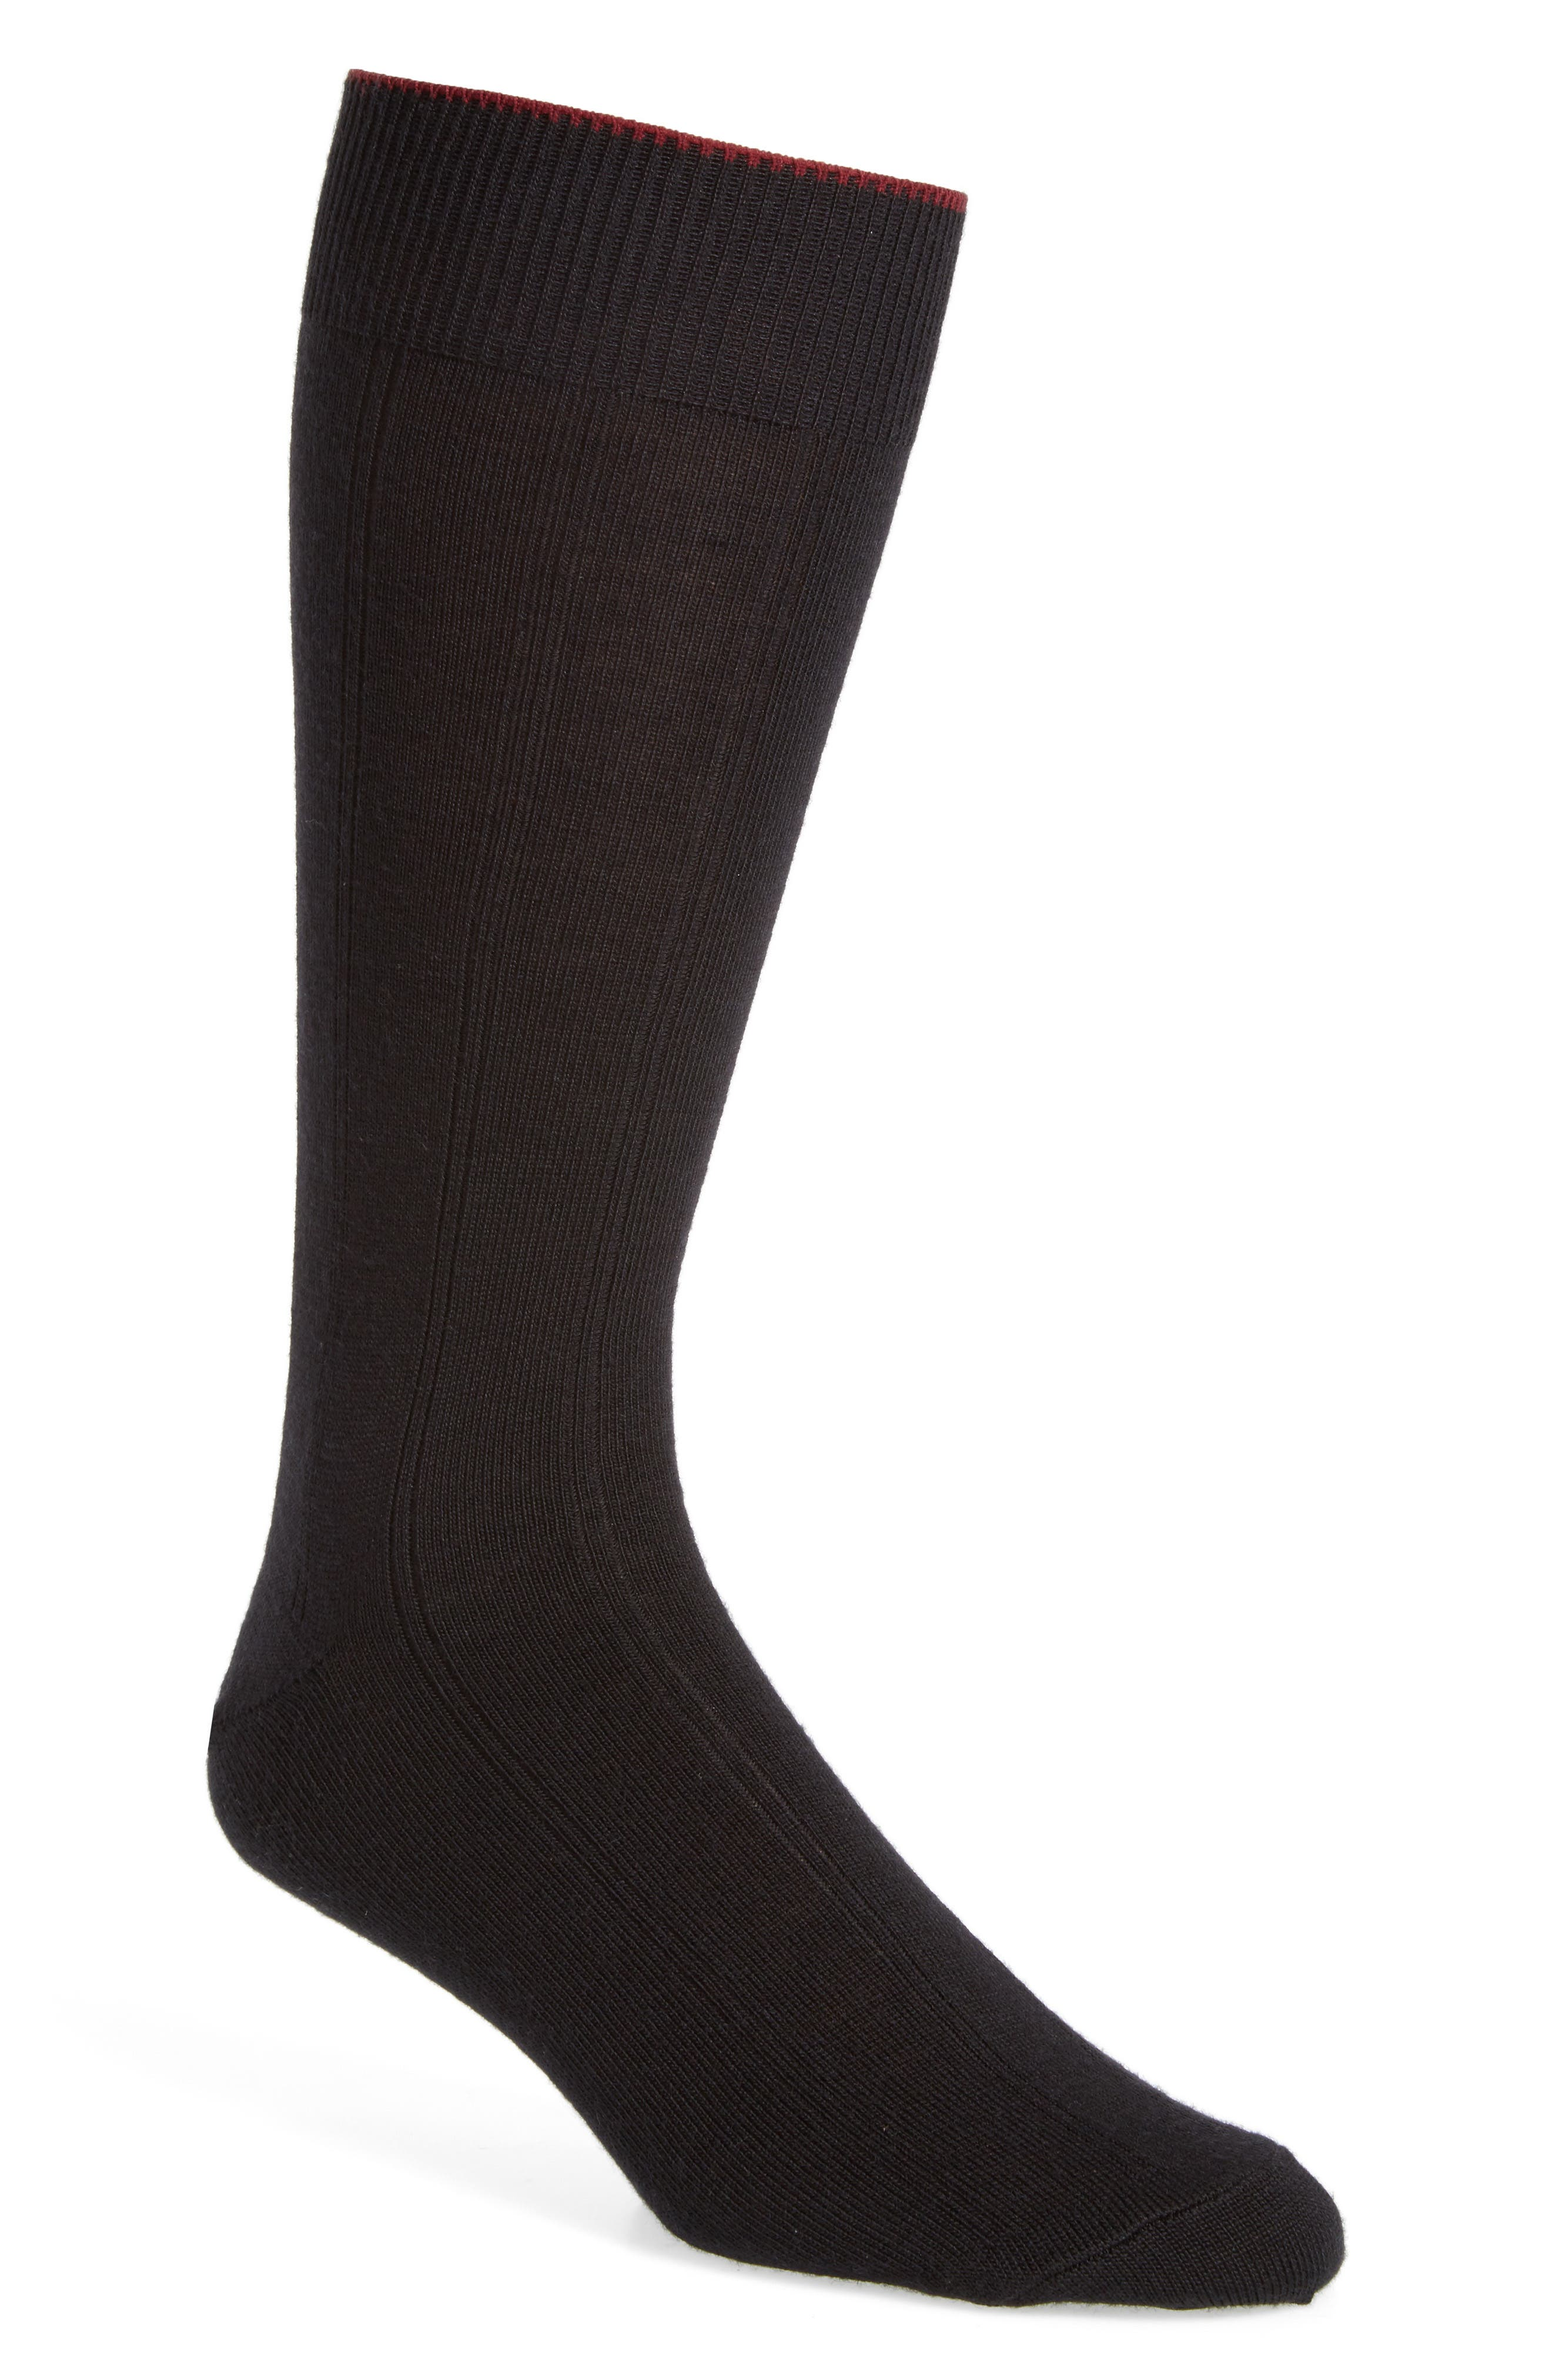 NORDSTROM MEN'S SHOP, Rib Wool Blend Socks, Main thumbnail 1, color, BLACK